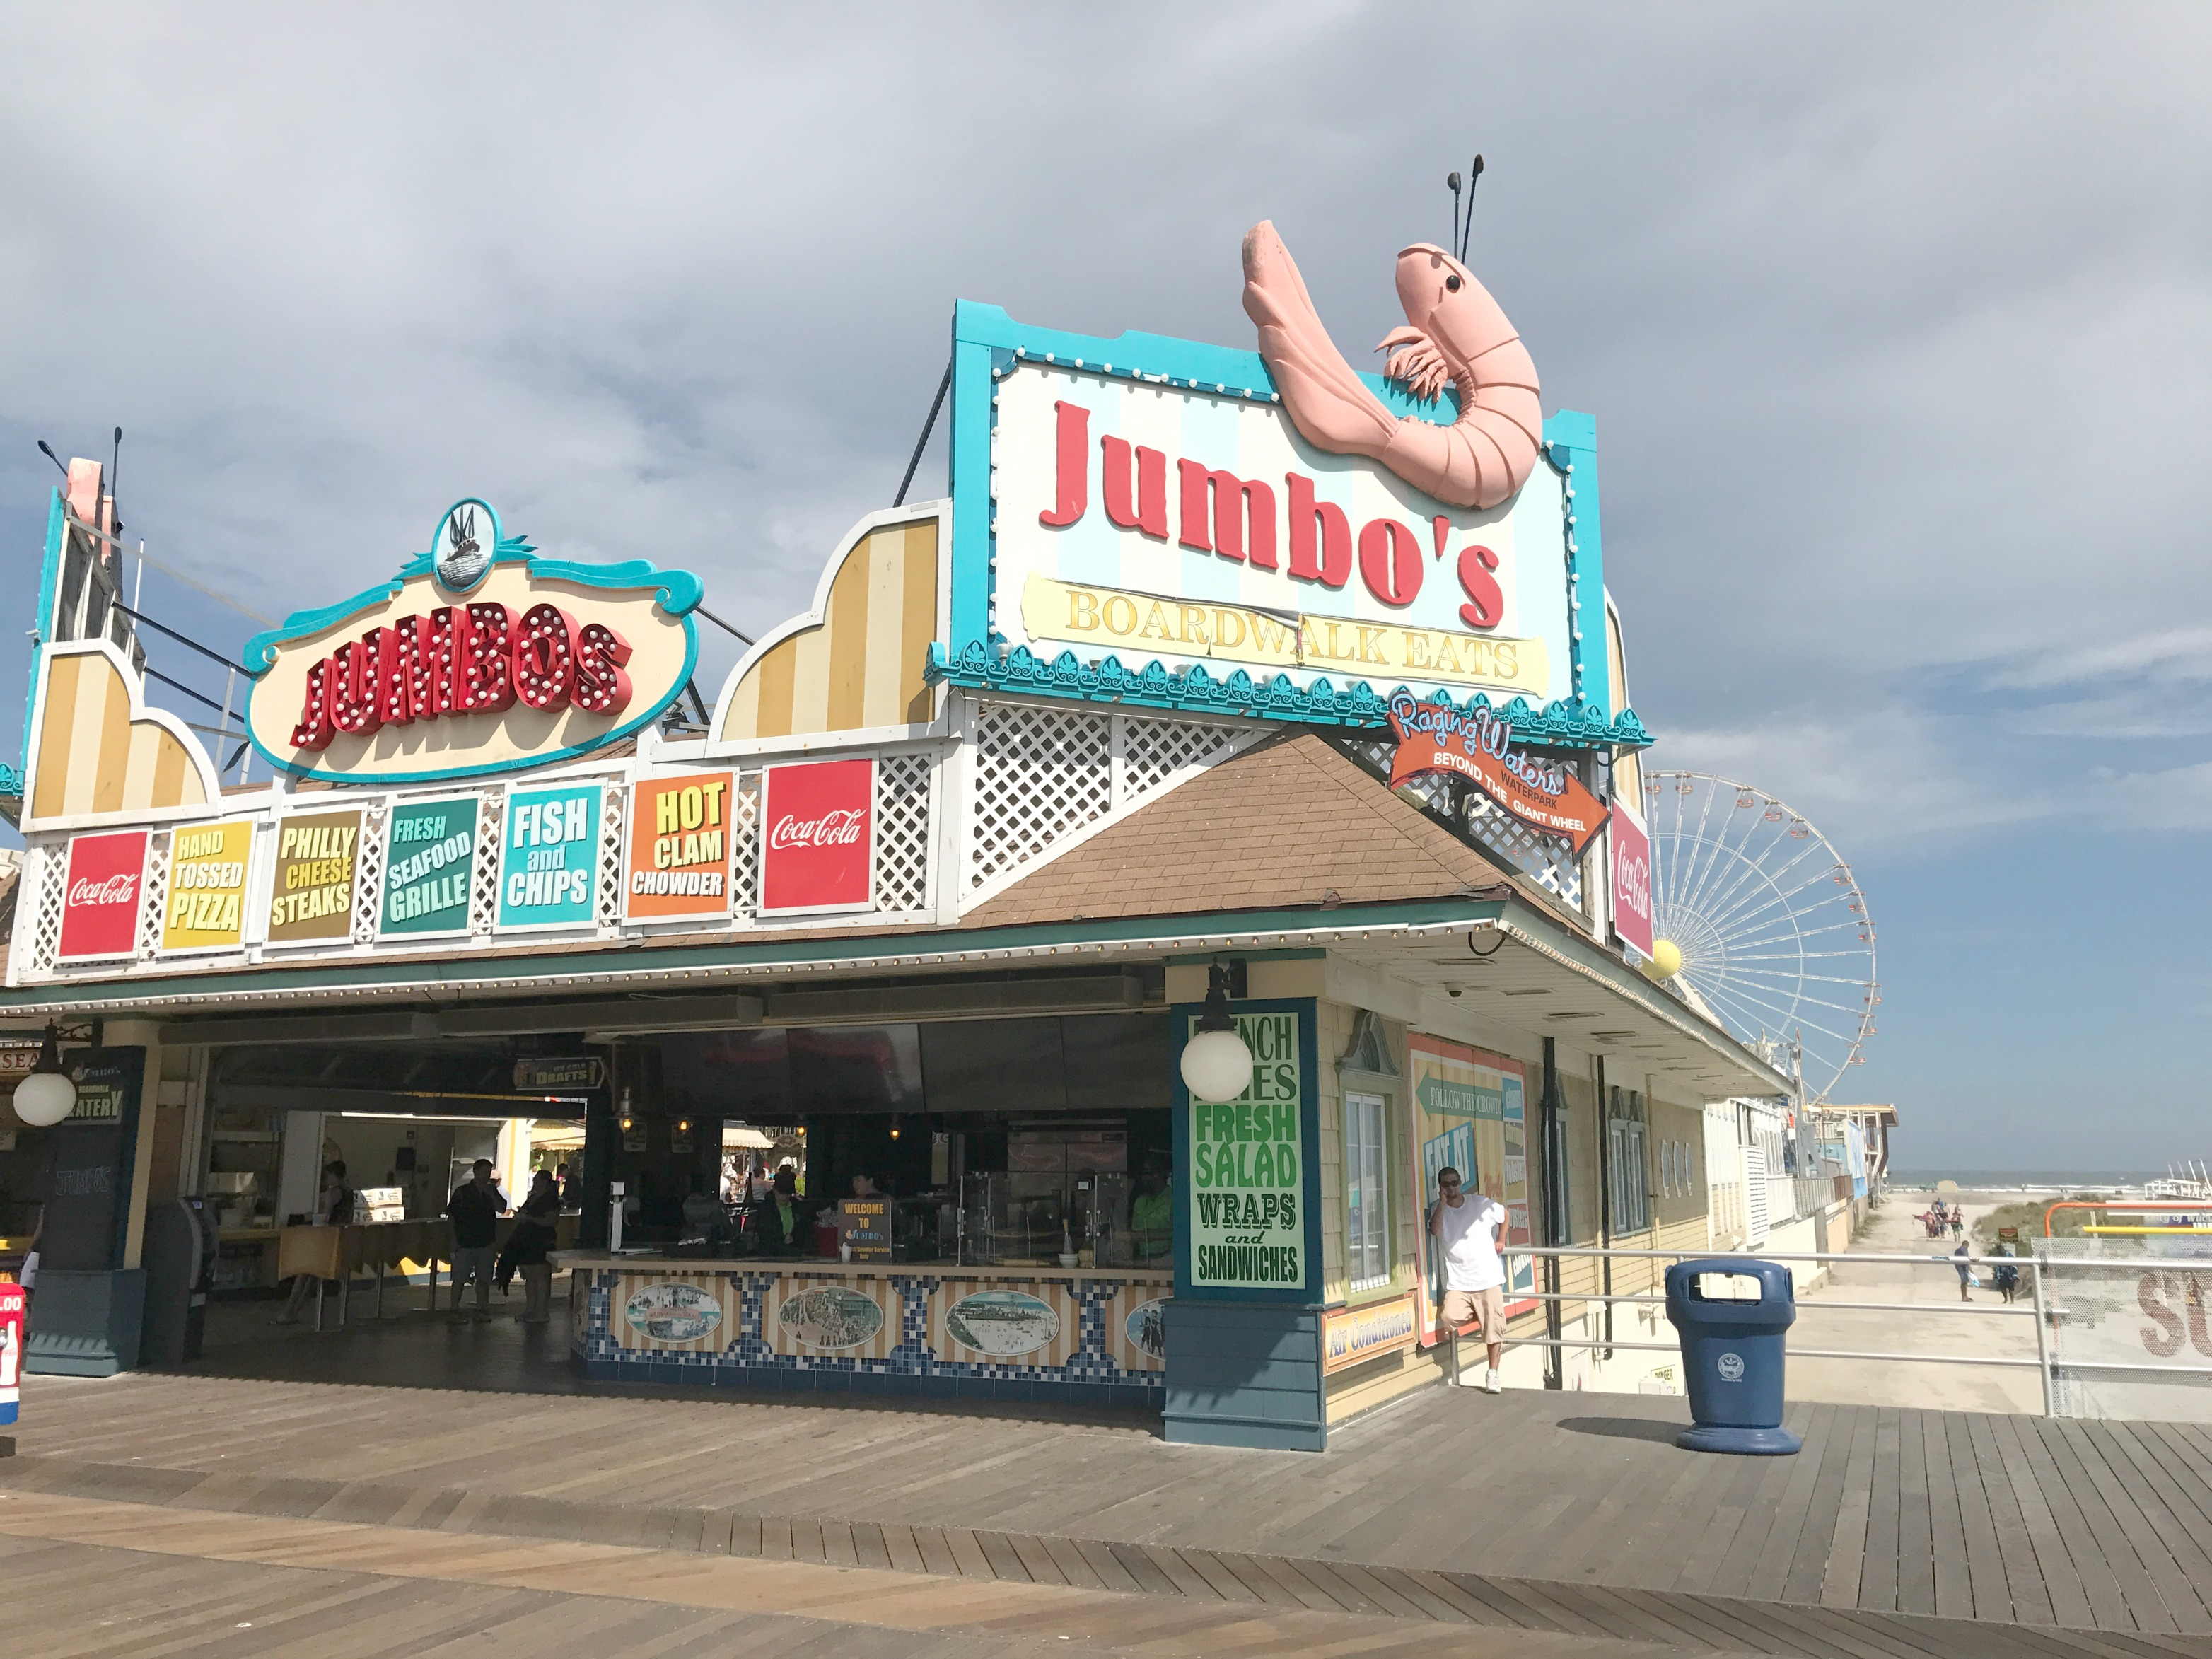 4 Reasons to Make Wildwood, New Jersey Your Next Vacation Destination